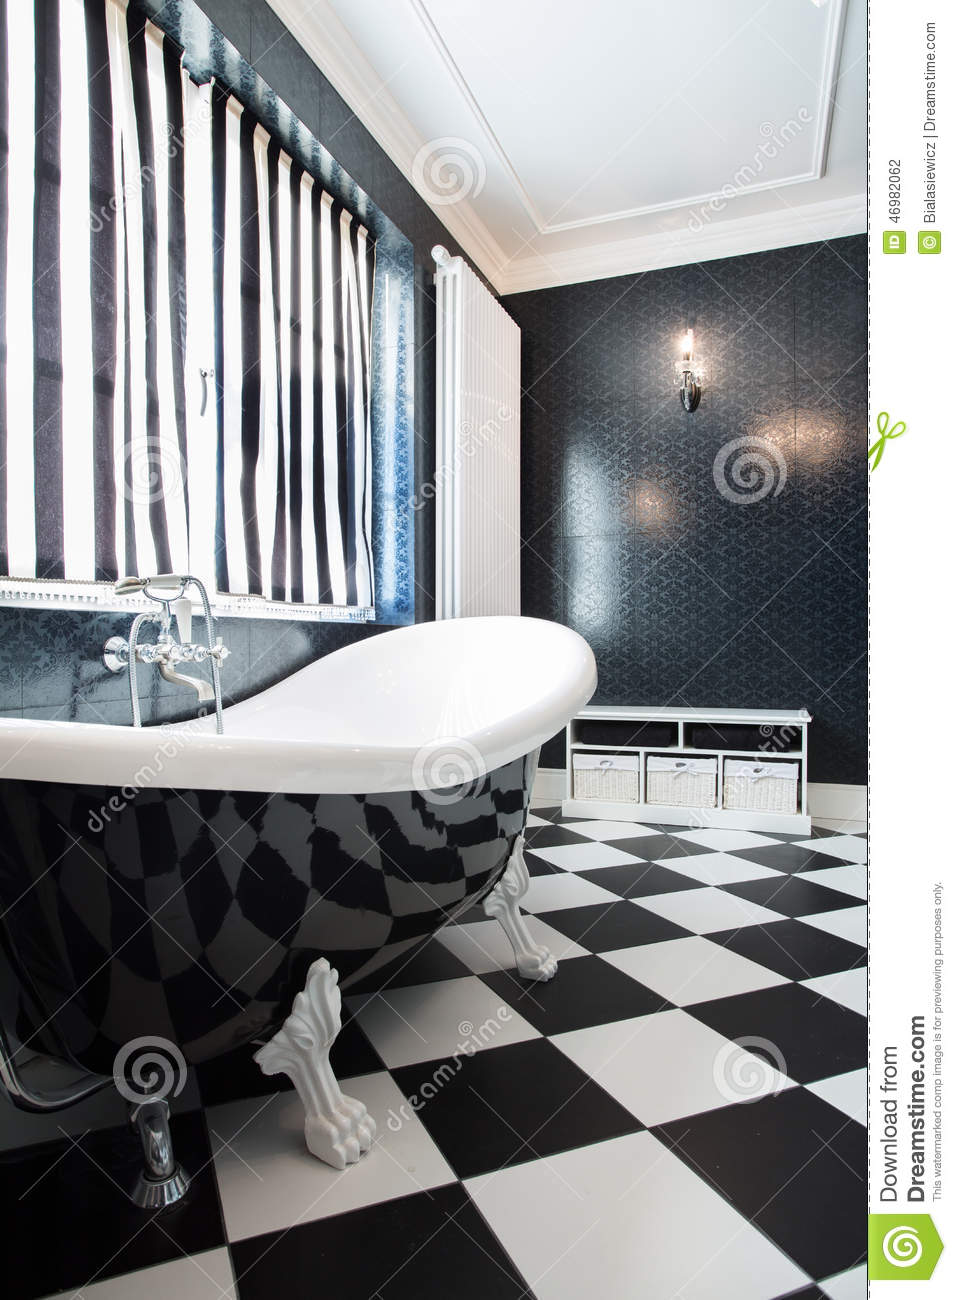 baignoire noire et blanche photo stock image du propre 46982062. Black Bedroom Furniture Sets. Home Design Ideas